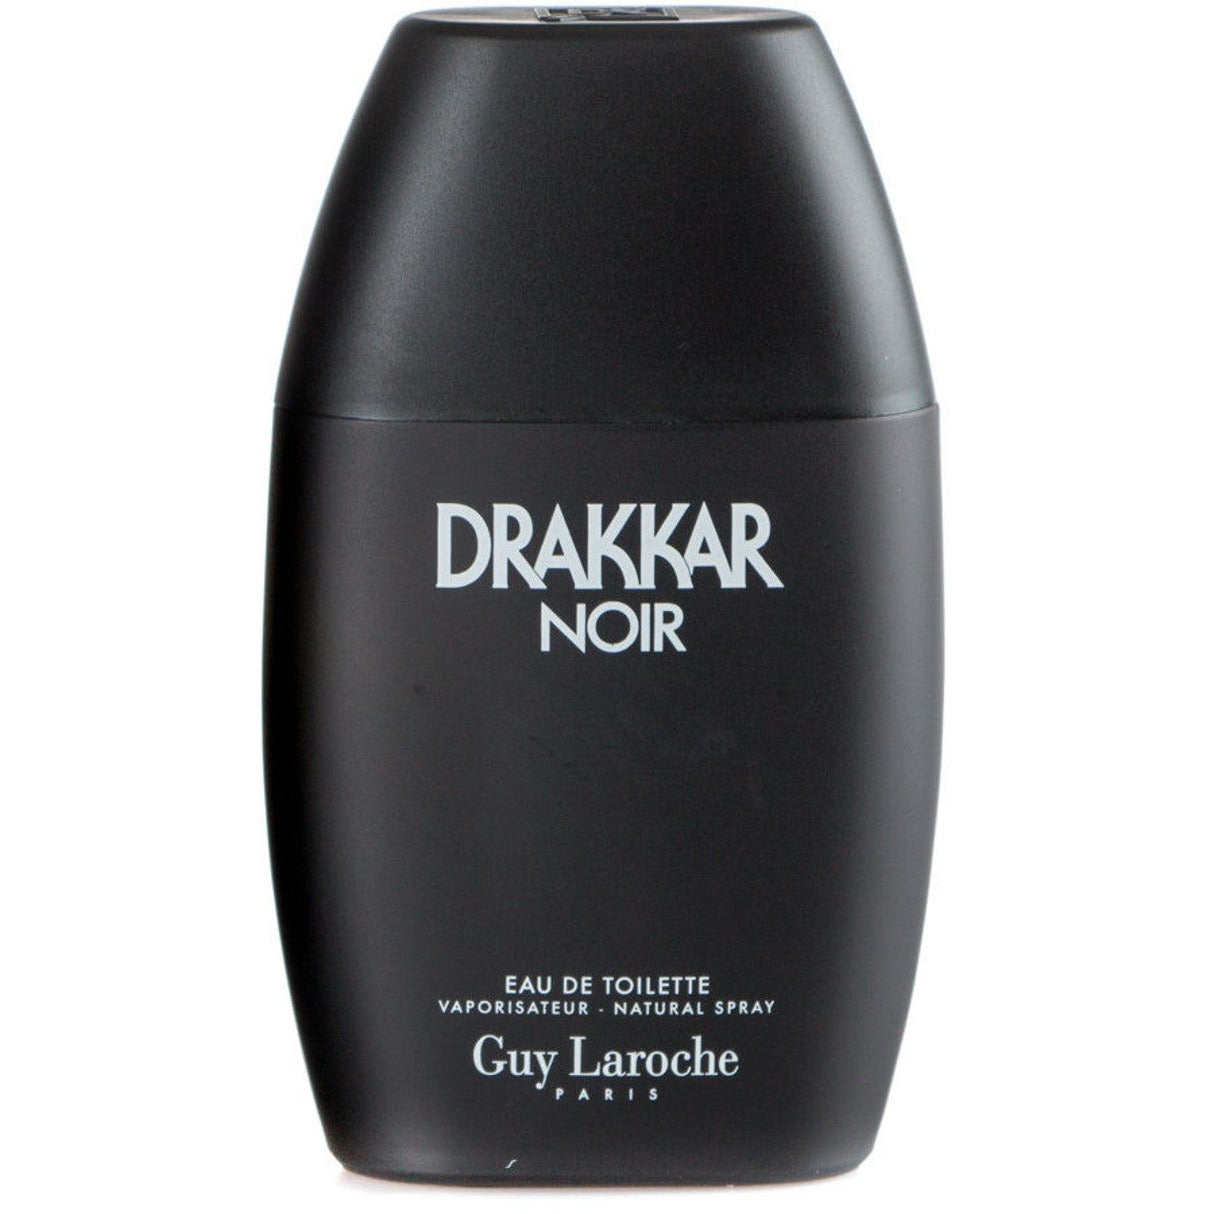 DRAKKAR NOIR by Guy Laroche 6.7 oz / 6.8 oz Cologne New damaged box